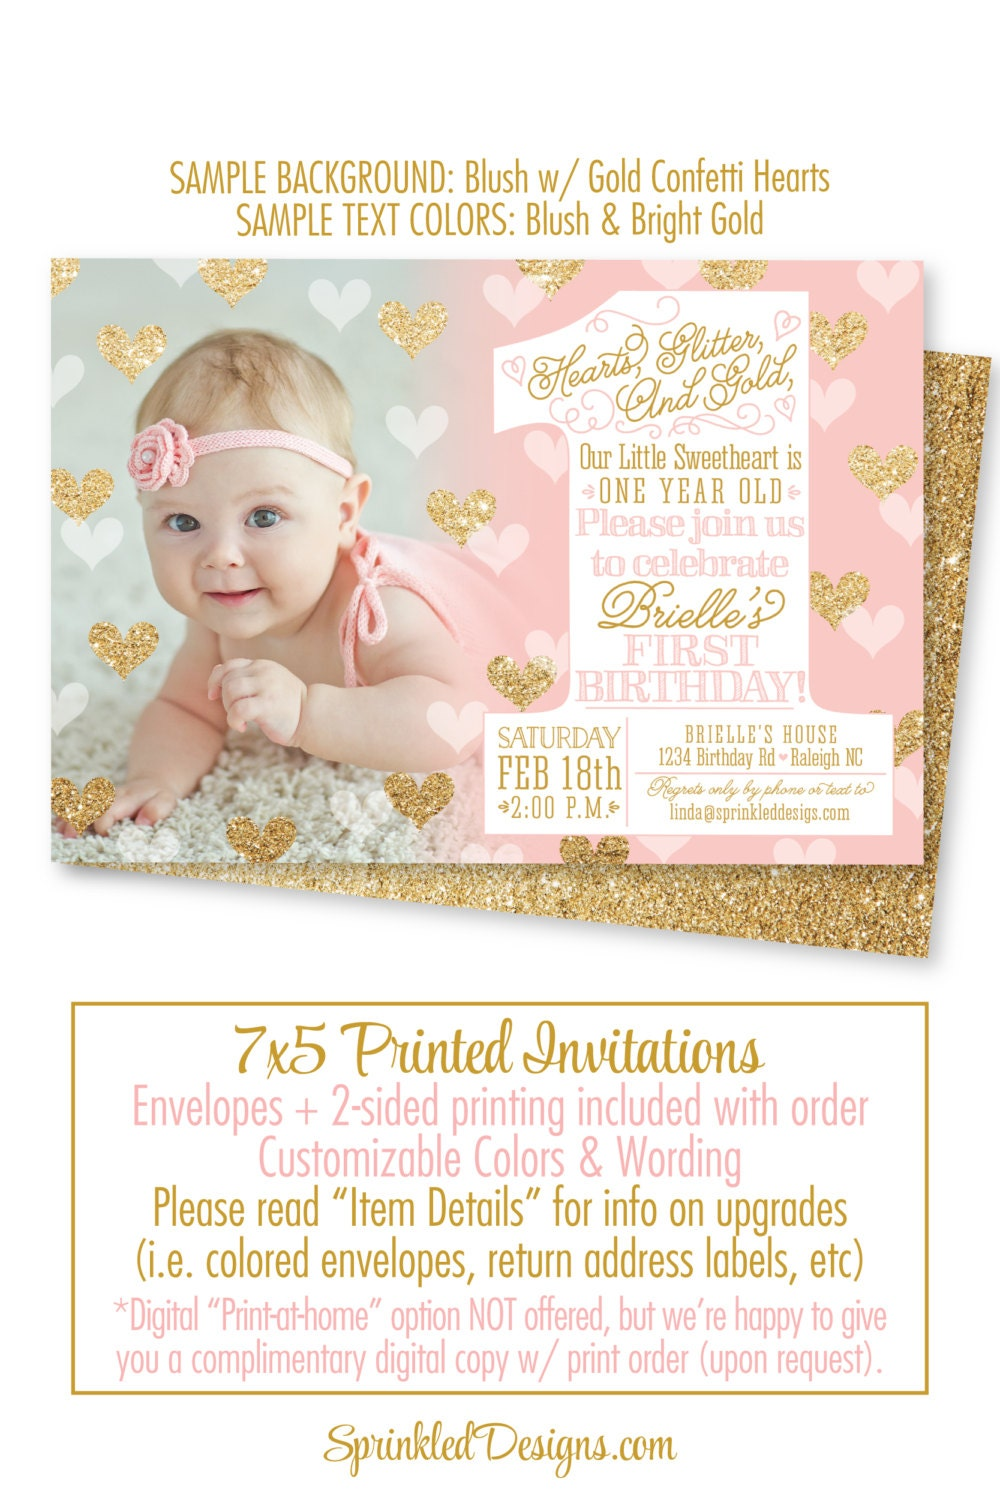 1st Birthday Invitations Australia Tags low cost wedding invitations ...